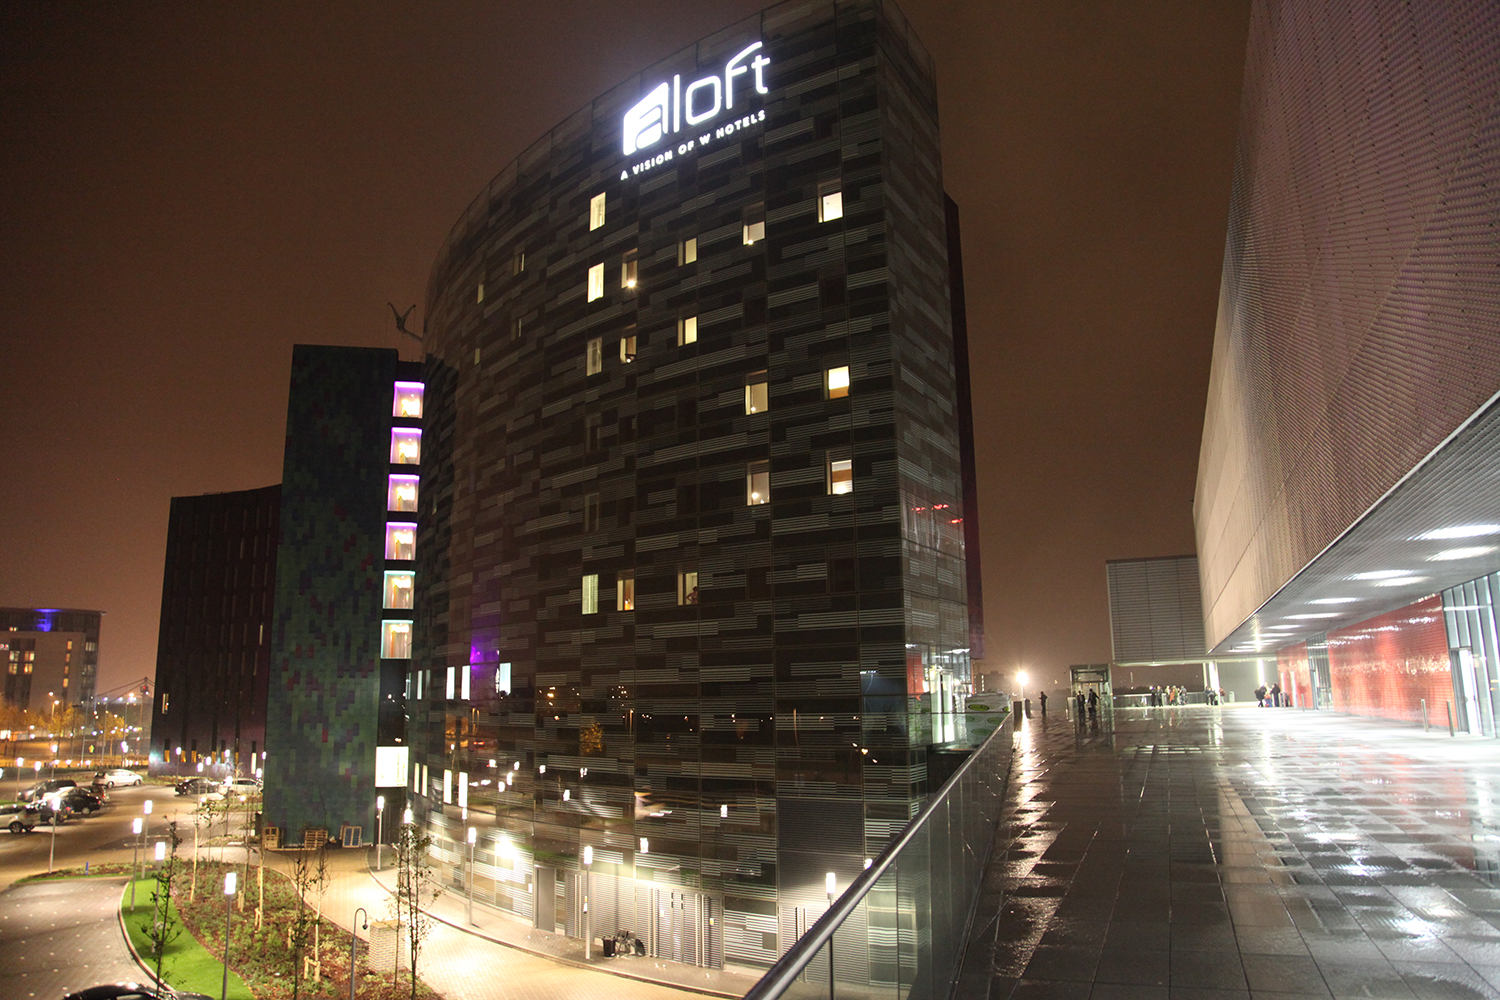 typical of my hotel snapshots., the A-loft in London's Docklands at its opening